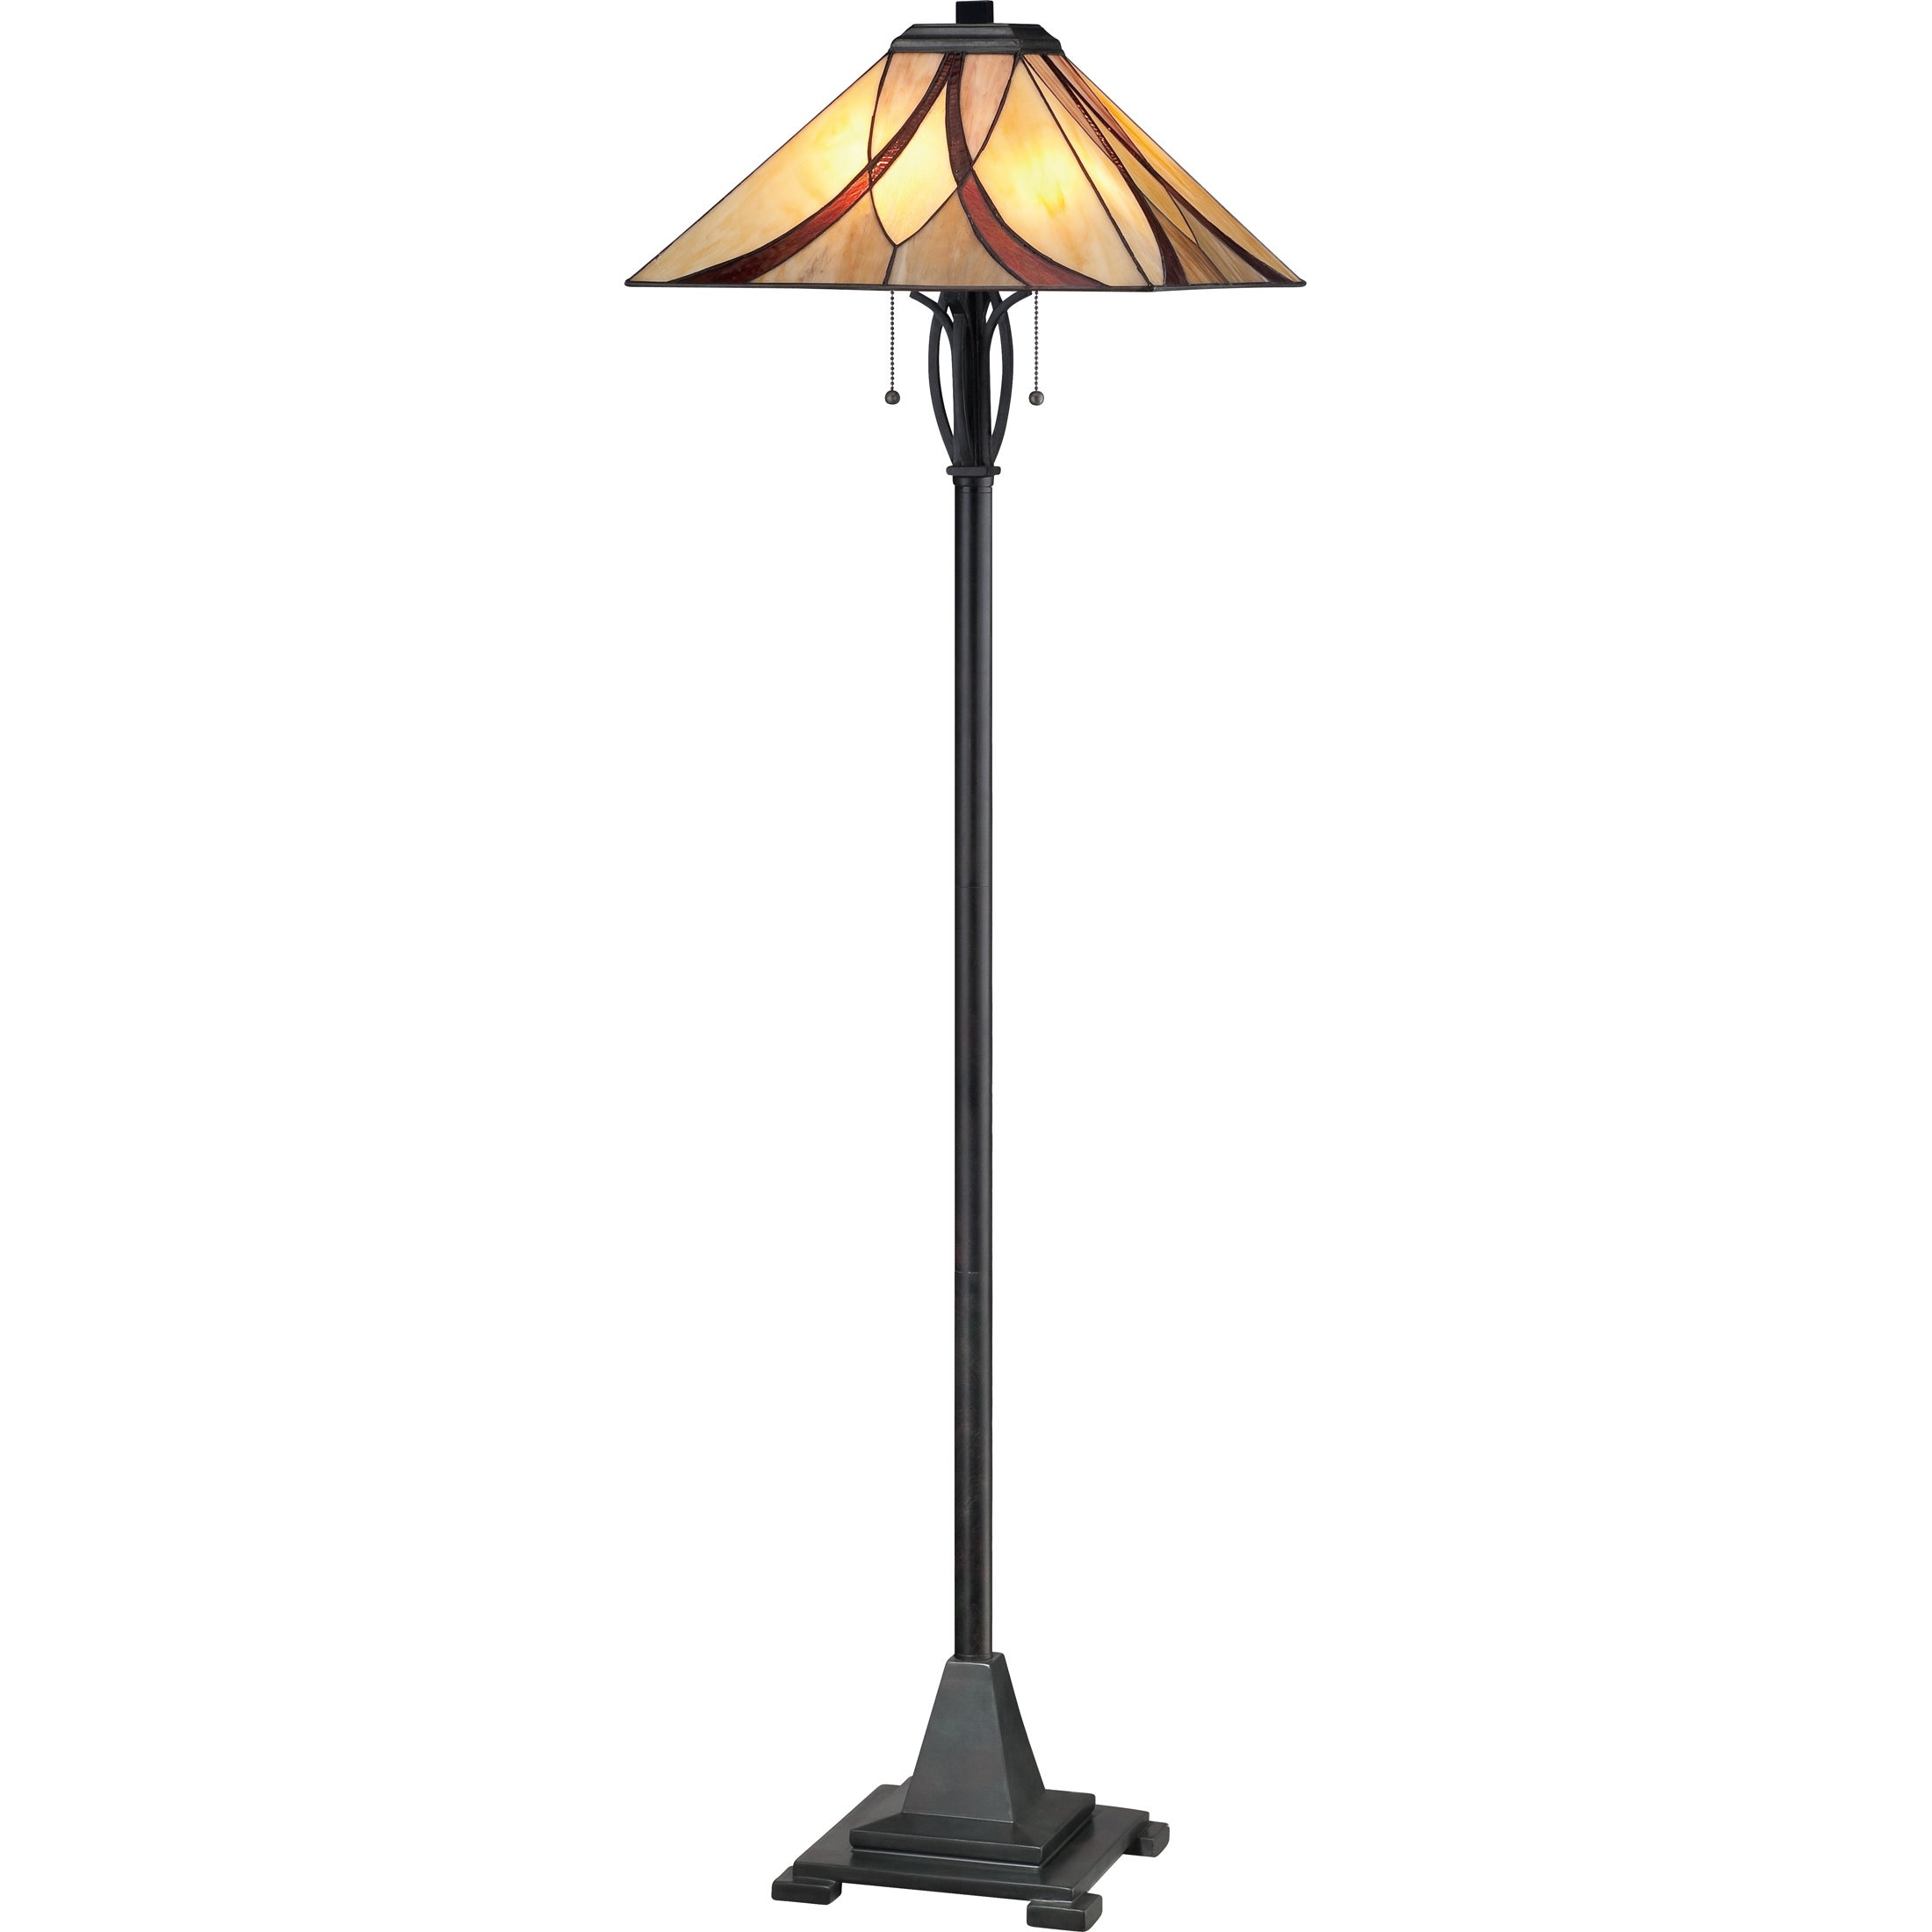 Quoizel Asheville 2-light Valiant Bronze Tiffany-style Floor Lamp